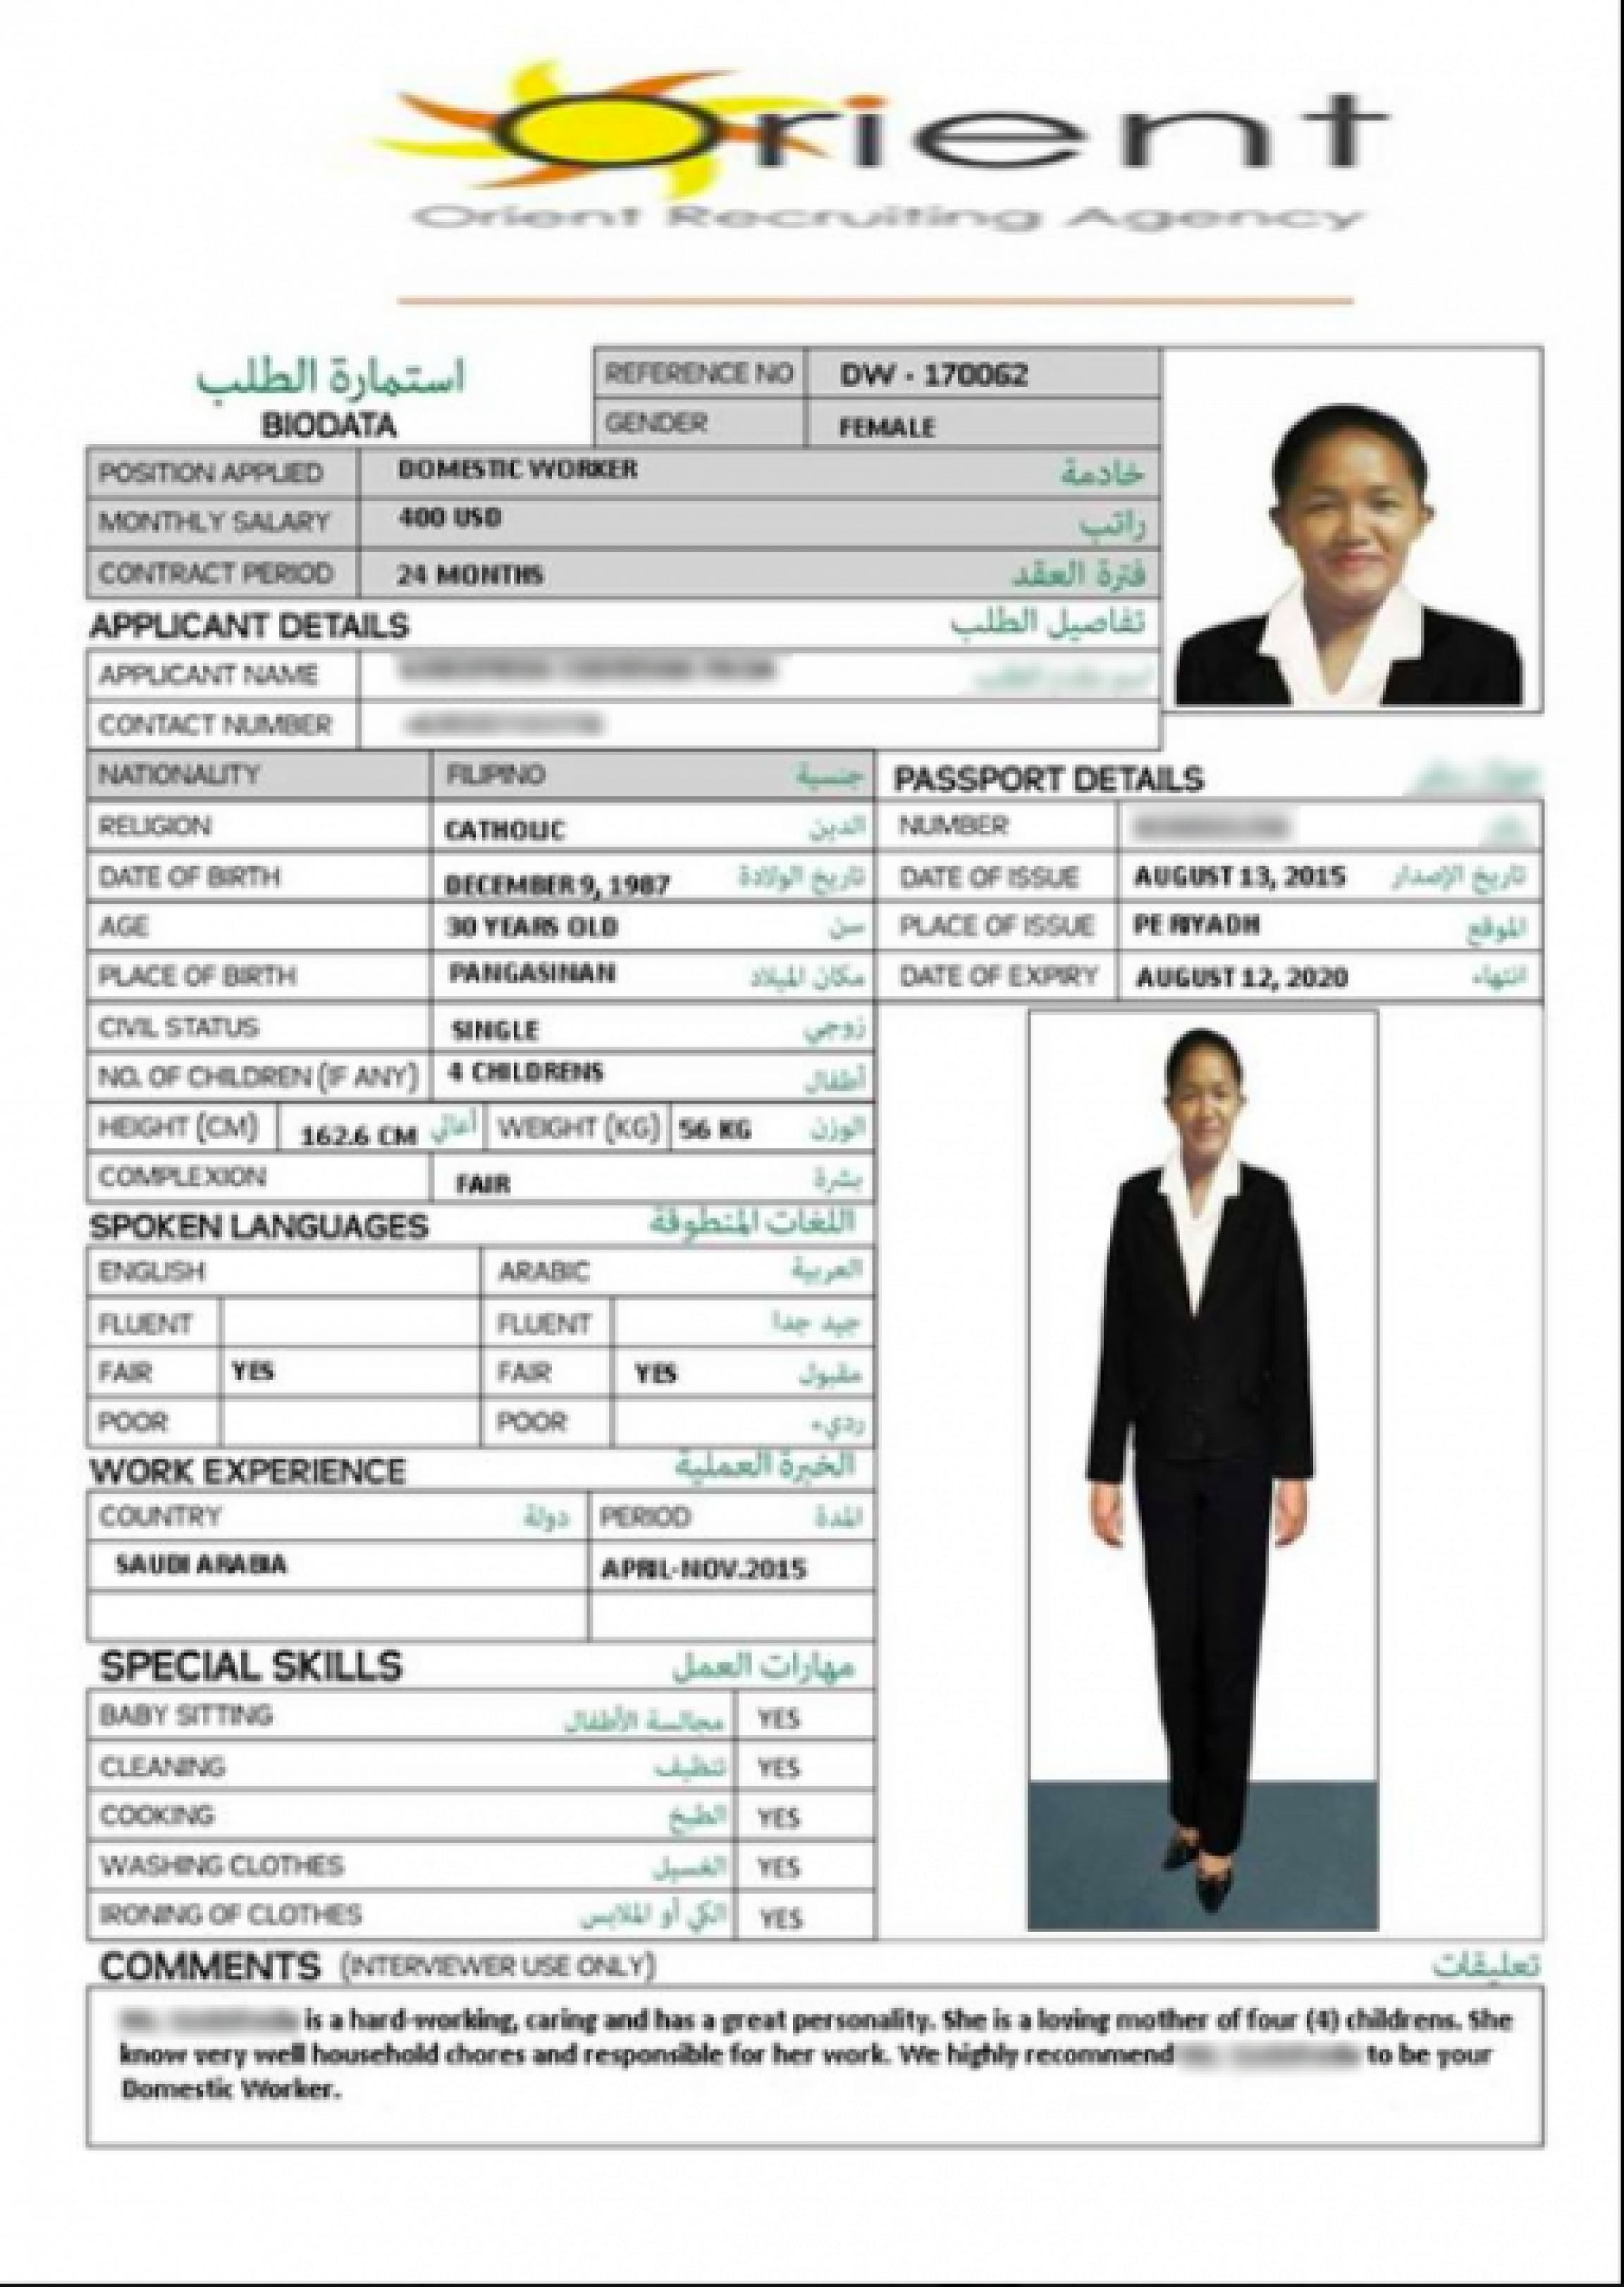 Screenshot of biodata ads from domestic worker recruiting agency.